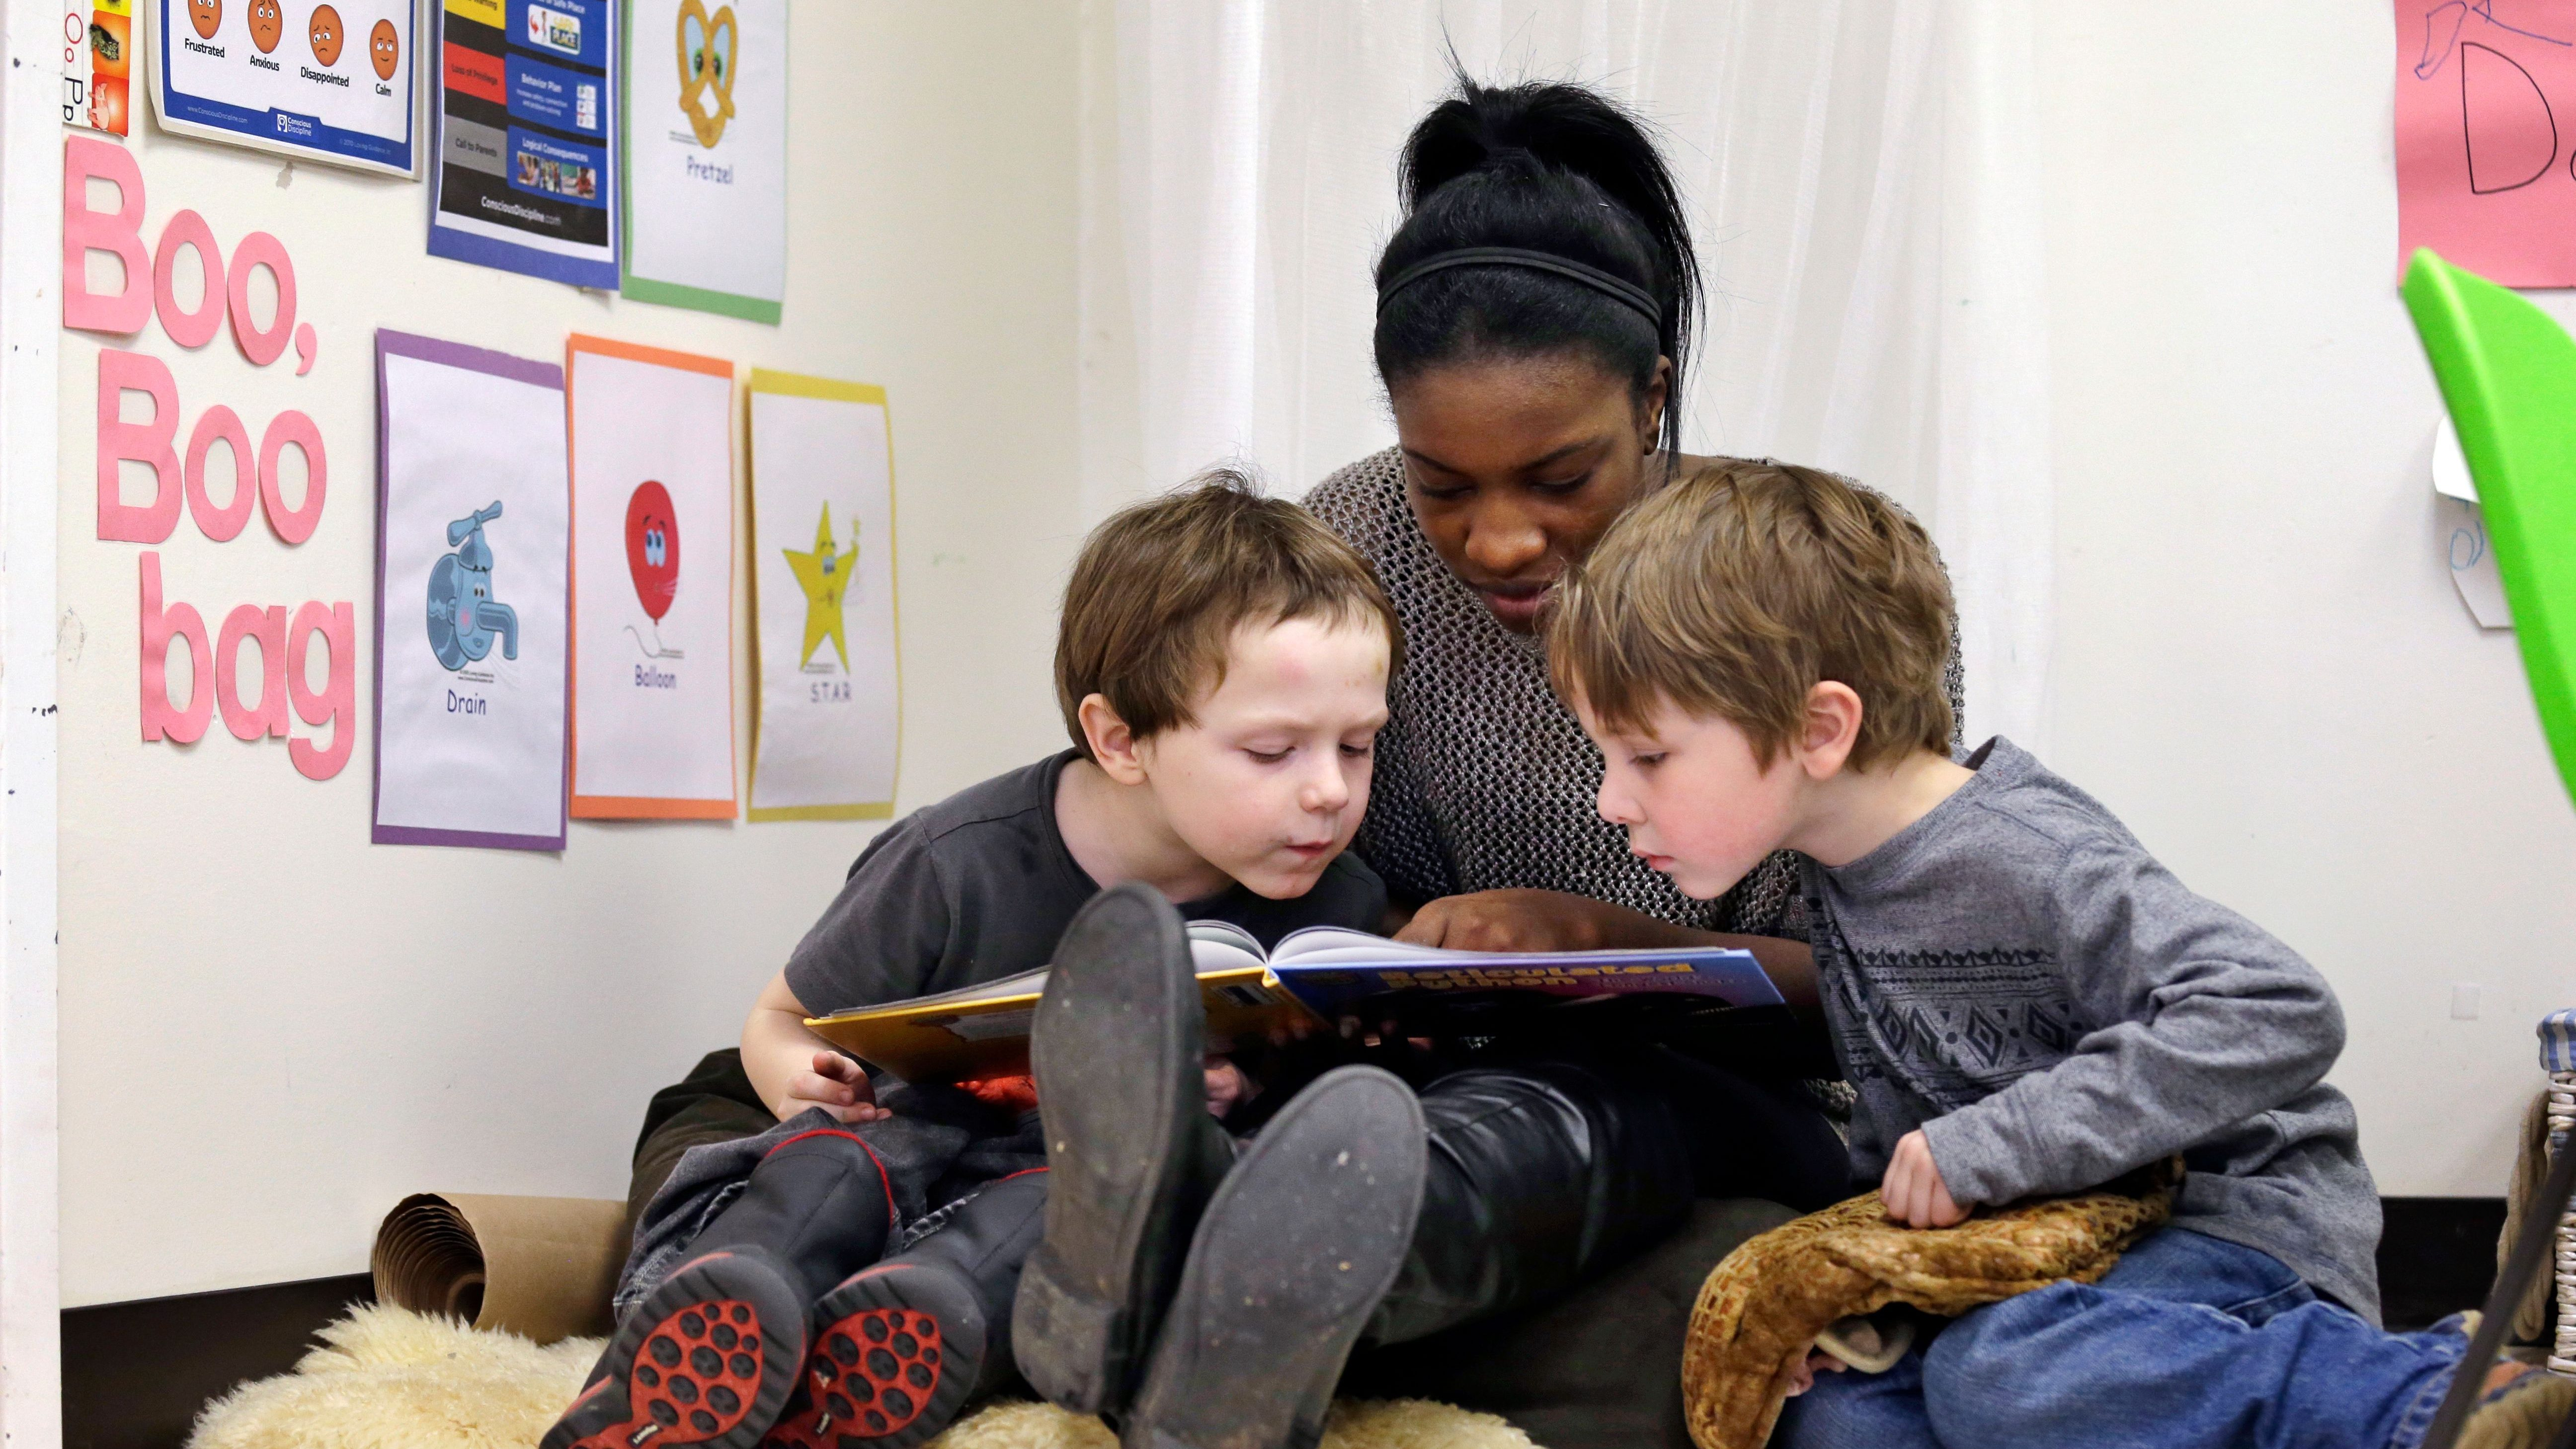 In this photo taken Feb. 12, 2016, assistant teacher D'onna Hartman, reads to Frederick Frenious, left, and Gus Saunders at the Creative Kids Learning Center, a school that focuses on pre-kindergarten for 4- and 5-year-olds, in Seattle.